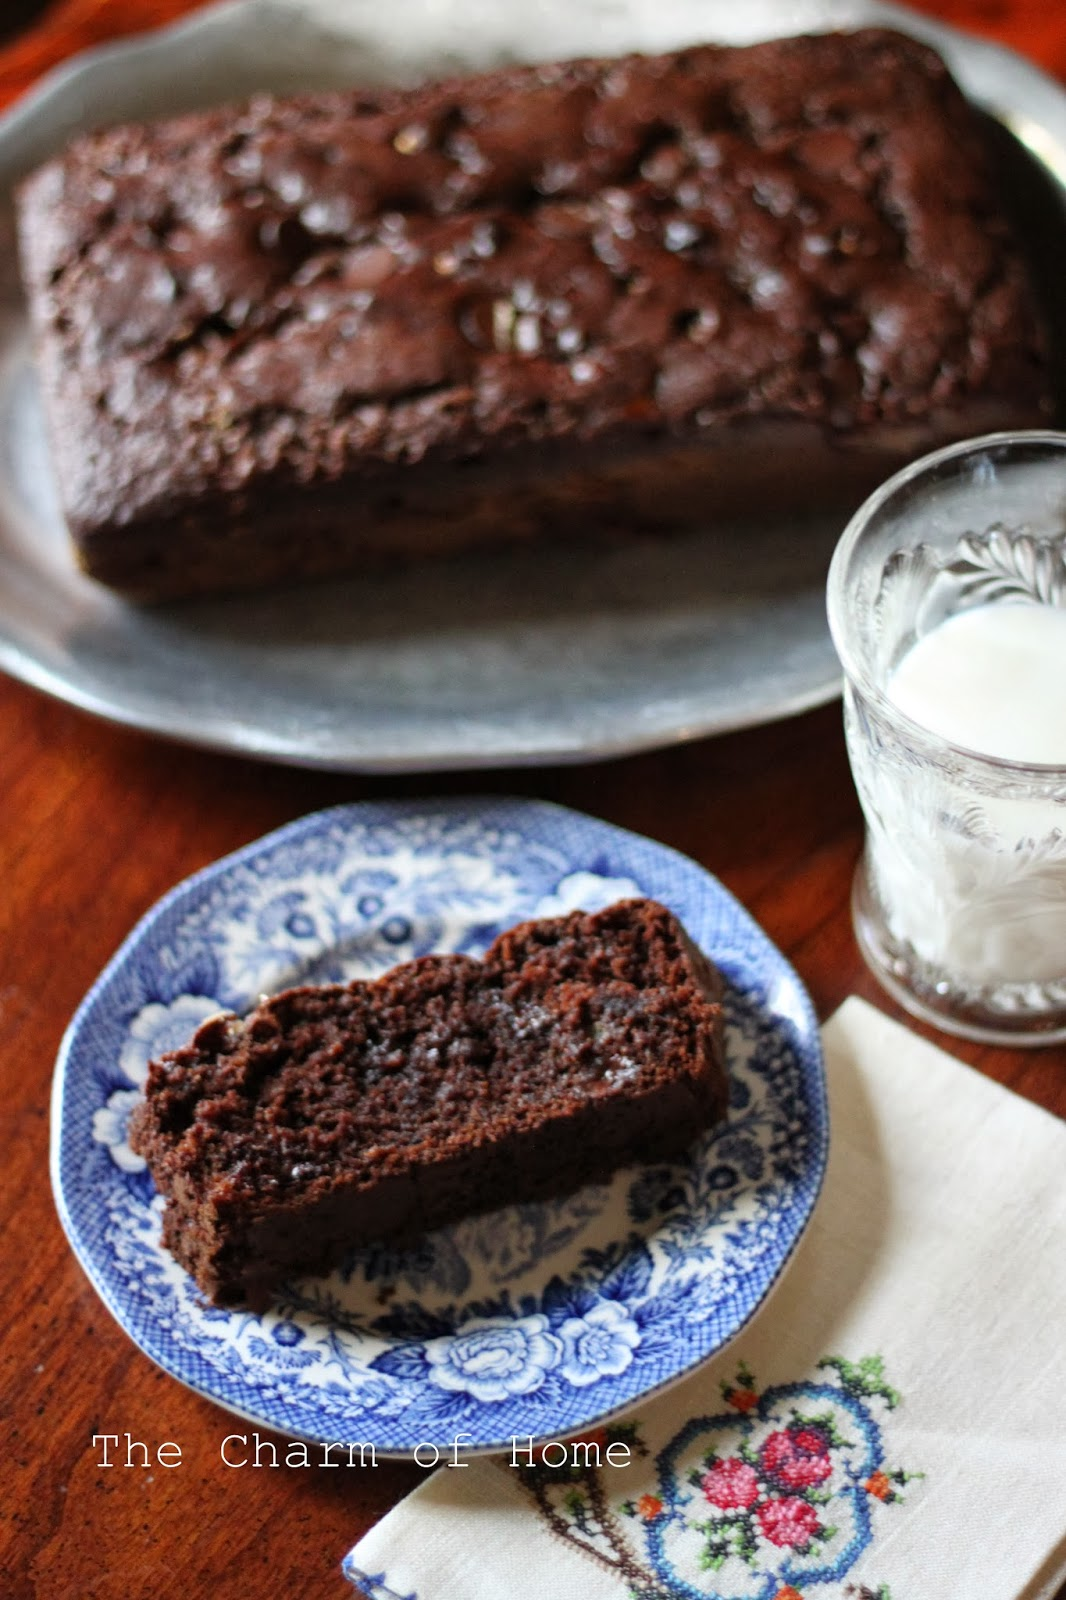 The Charm of Home: Chocolate Banana Bread with Marshmallow Bits